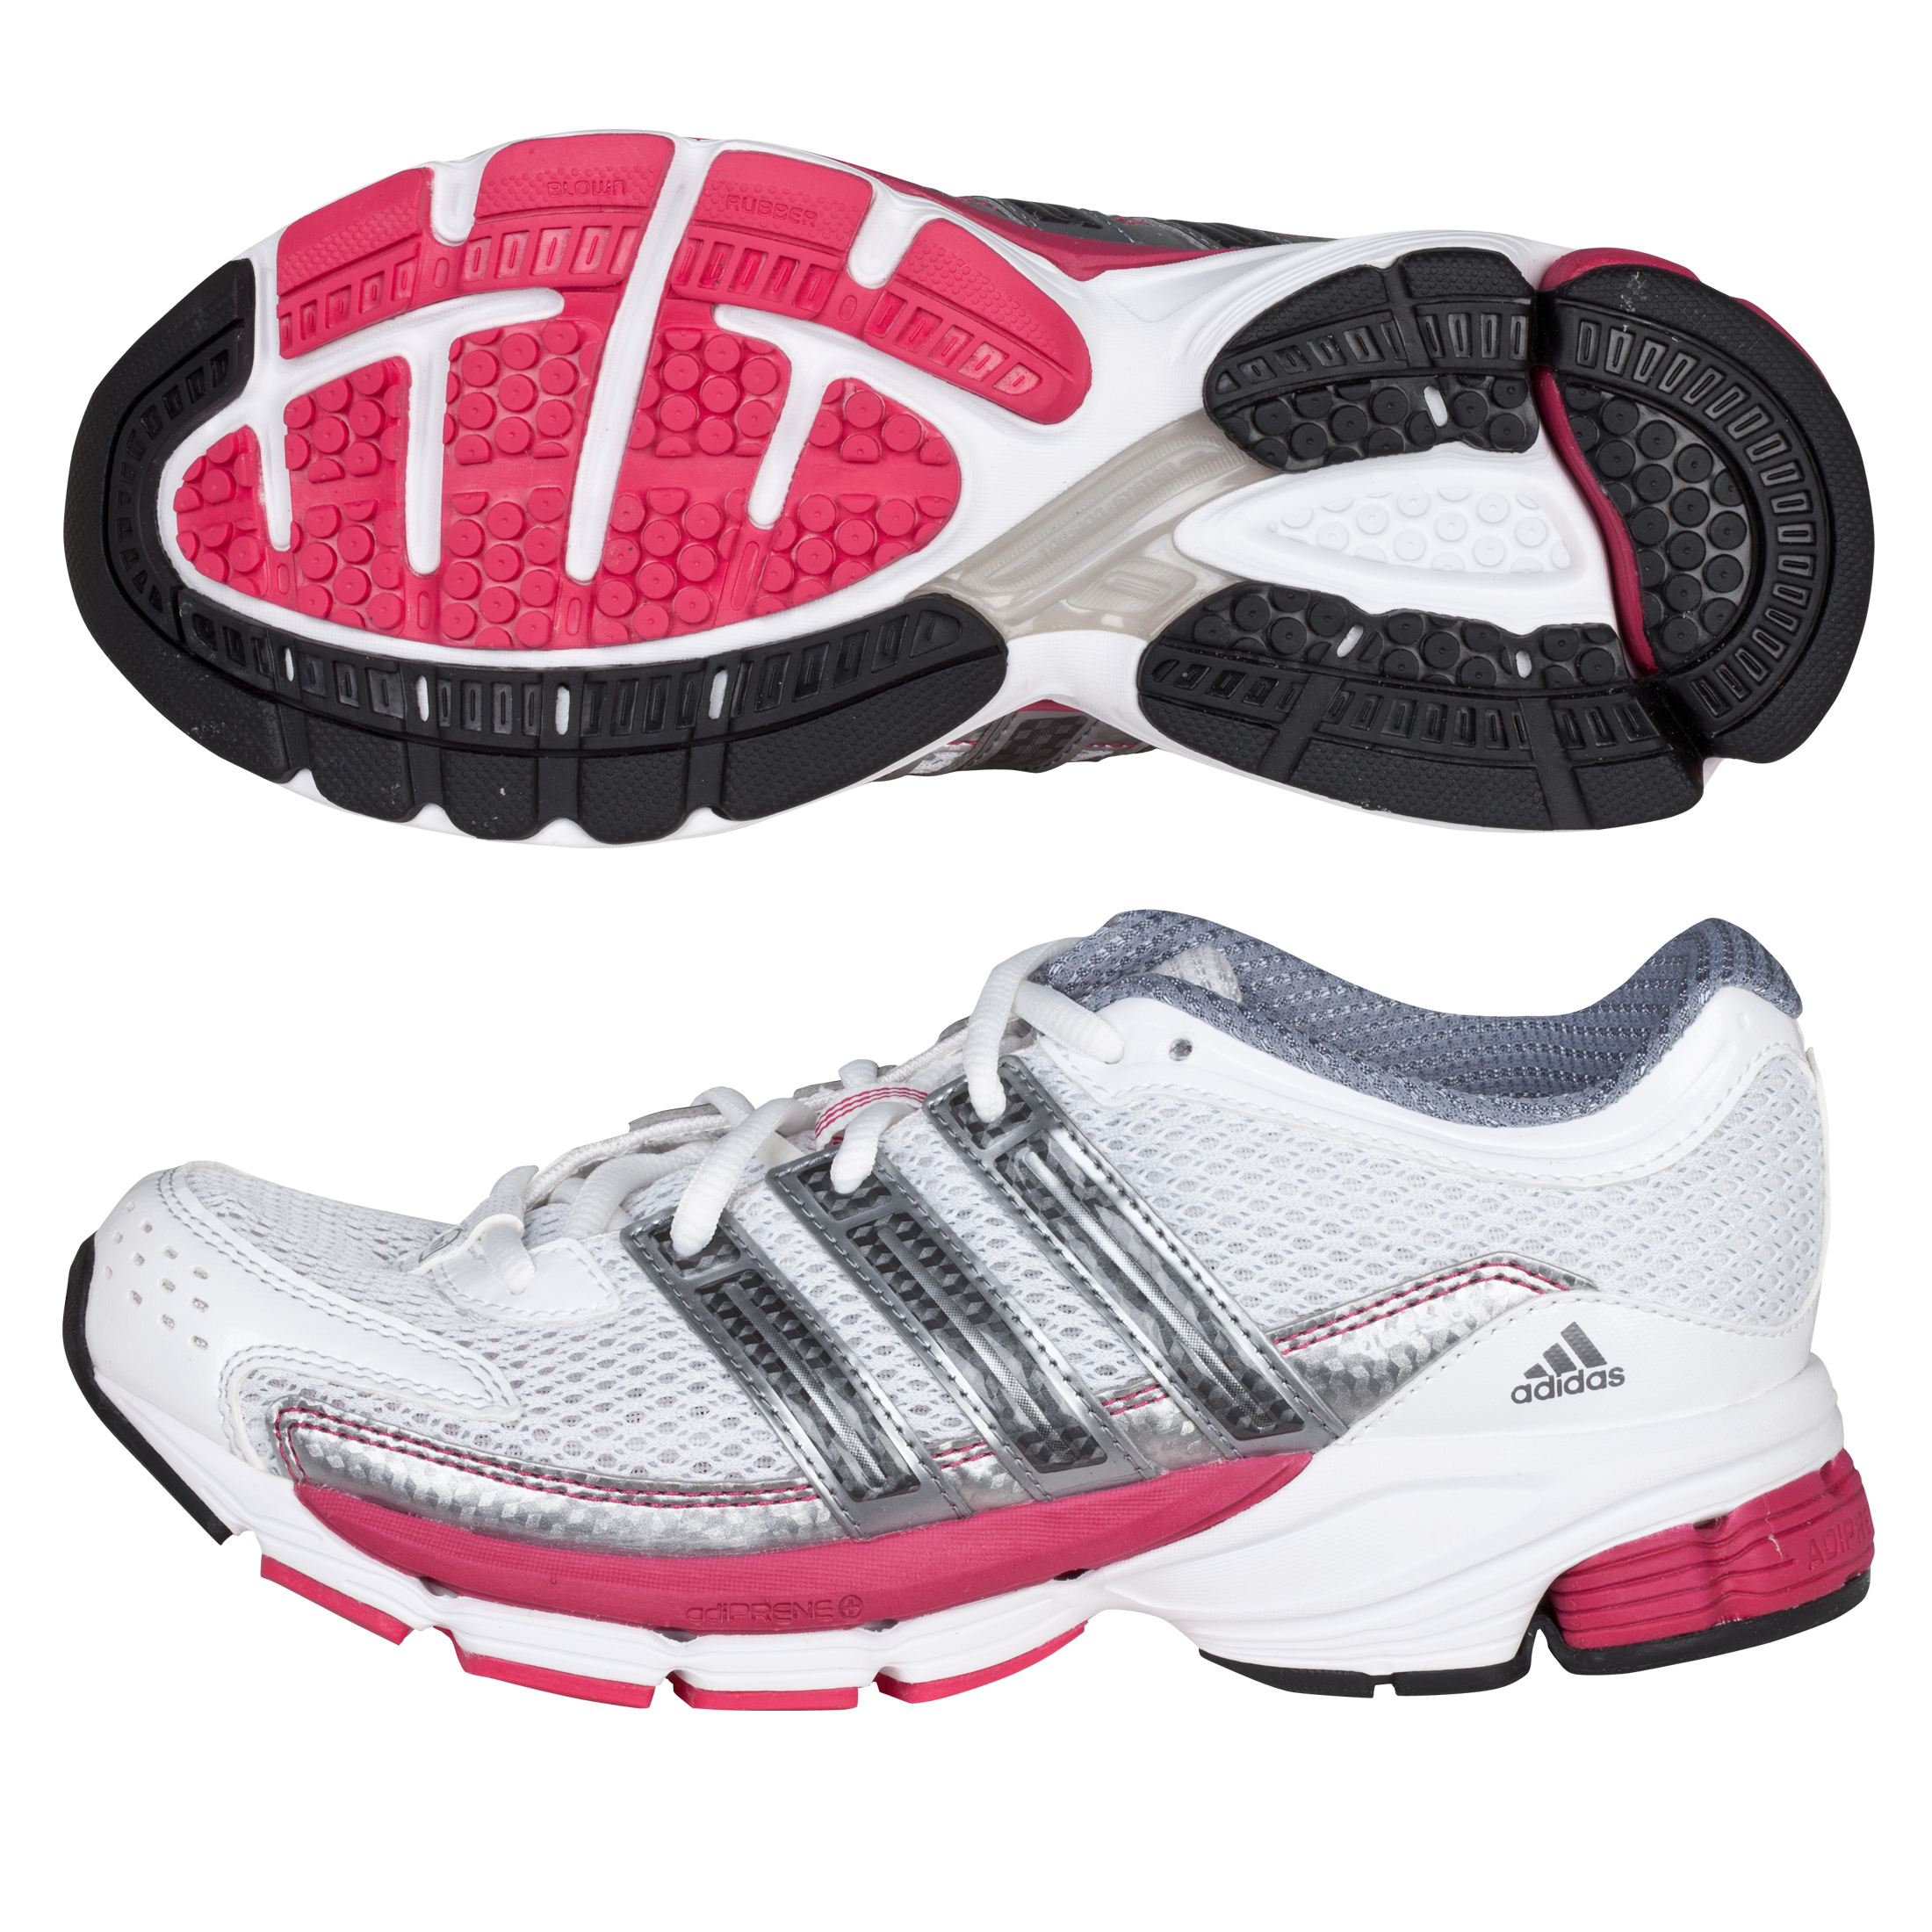 Adidas Questar Cushion Trainers - White/Neo Iron Met/Bright Pink - Womens